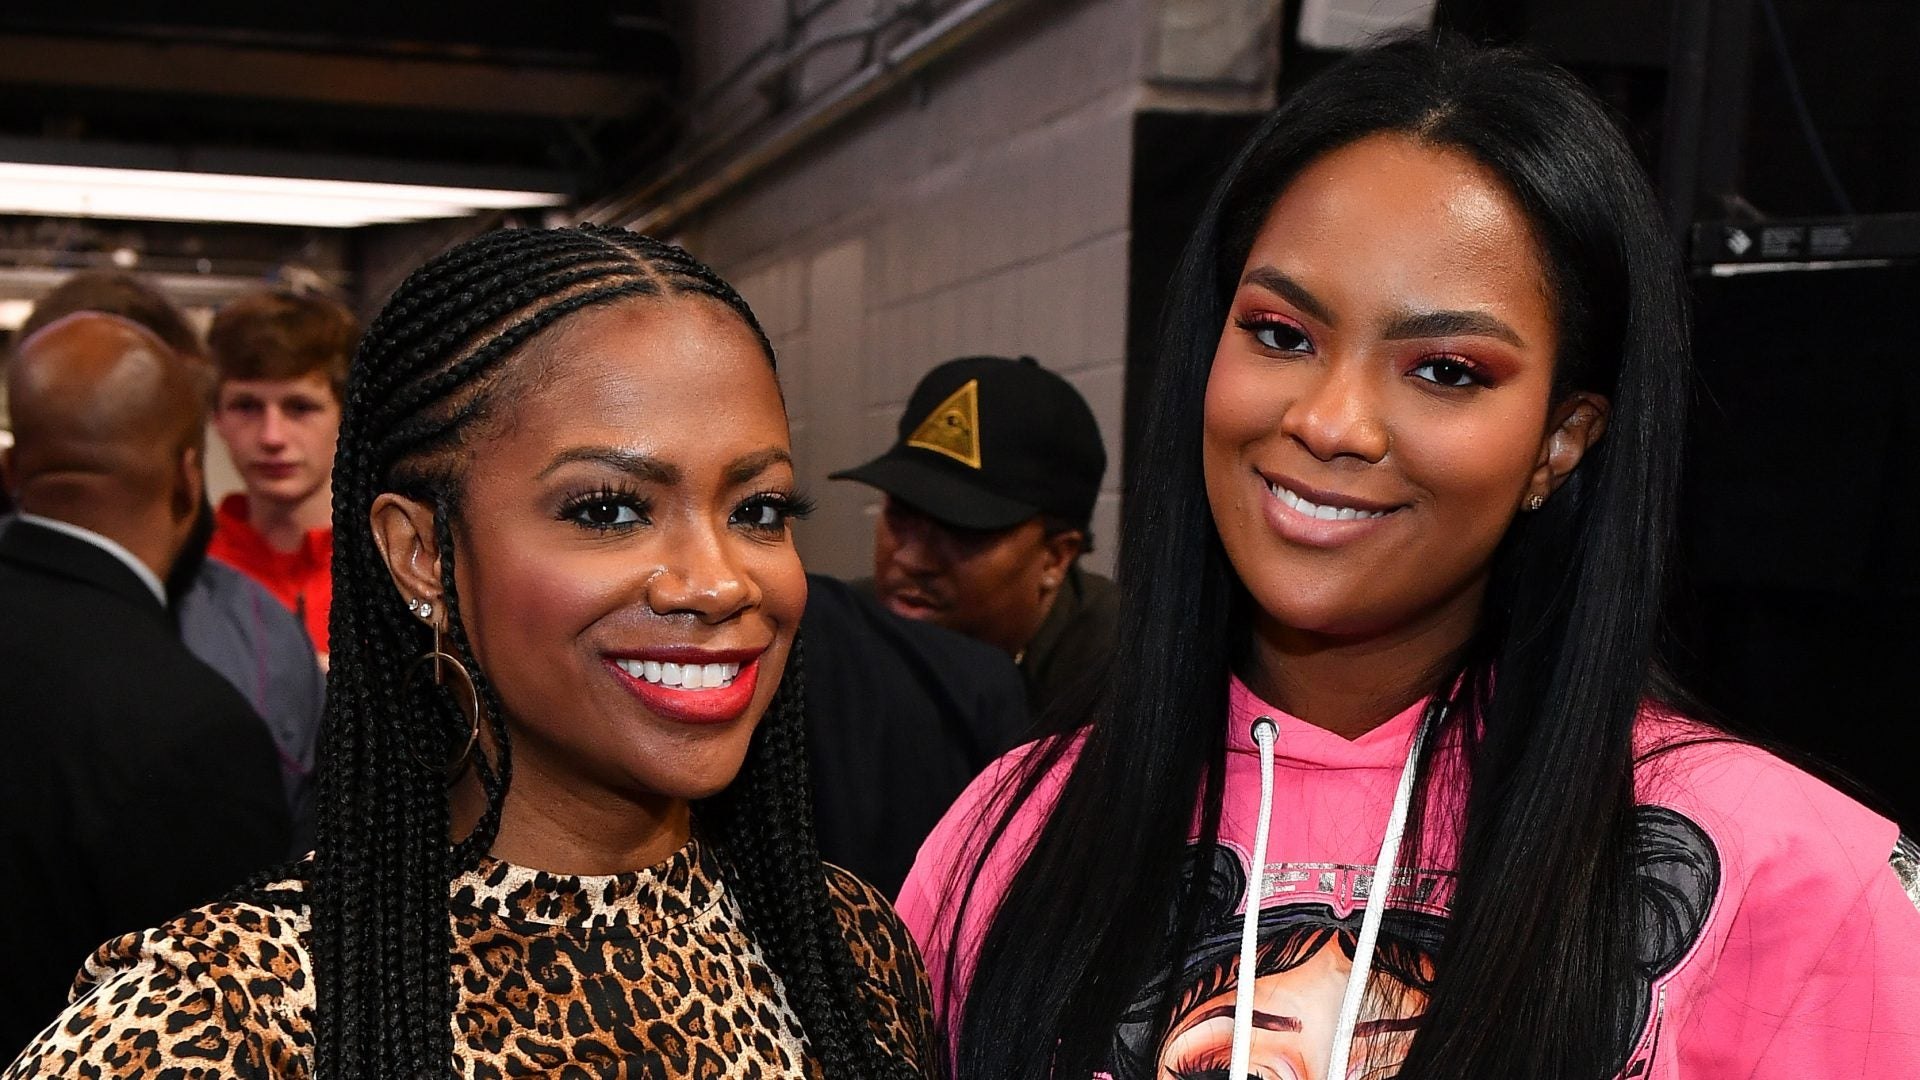 Kandi Burruss Shares Gorgeous Pics From Her Family Fun Day